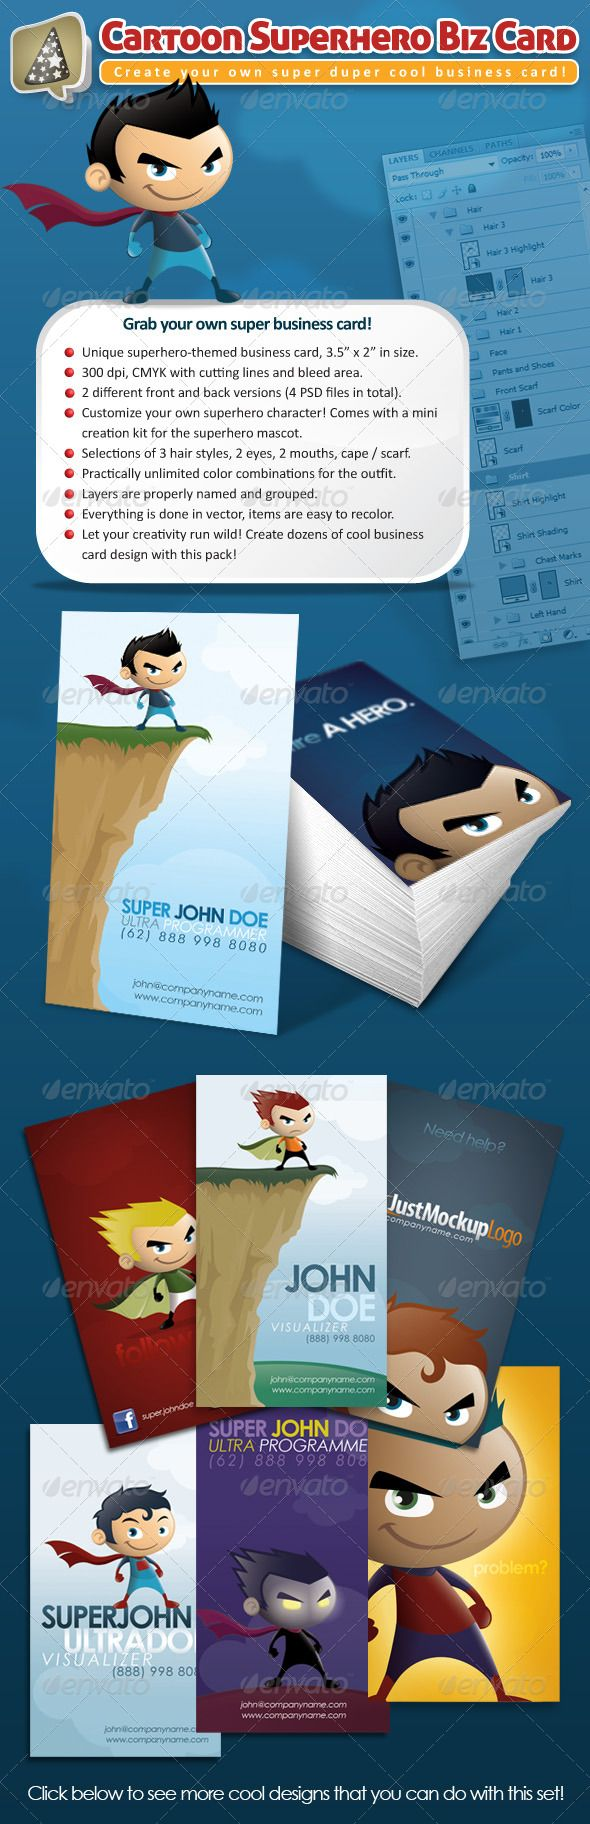 "Cartoon Superhero Business Card Maker  Ever want to add that whimsical touch and fun element to your business card? If yes, this superhero-themed business card is perfect for you! Standard 3.5"" x 2"" size (vertical) in 300 dpi, full CMYK with cutting lines and bleed area. Ready to print! This business card print template also comes with a mini cartoon superhero character creation kit – you can build and customize your very own superhero mascot!"